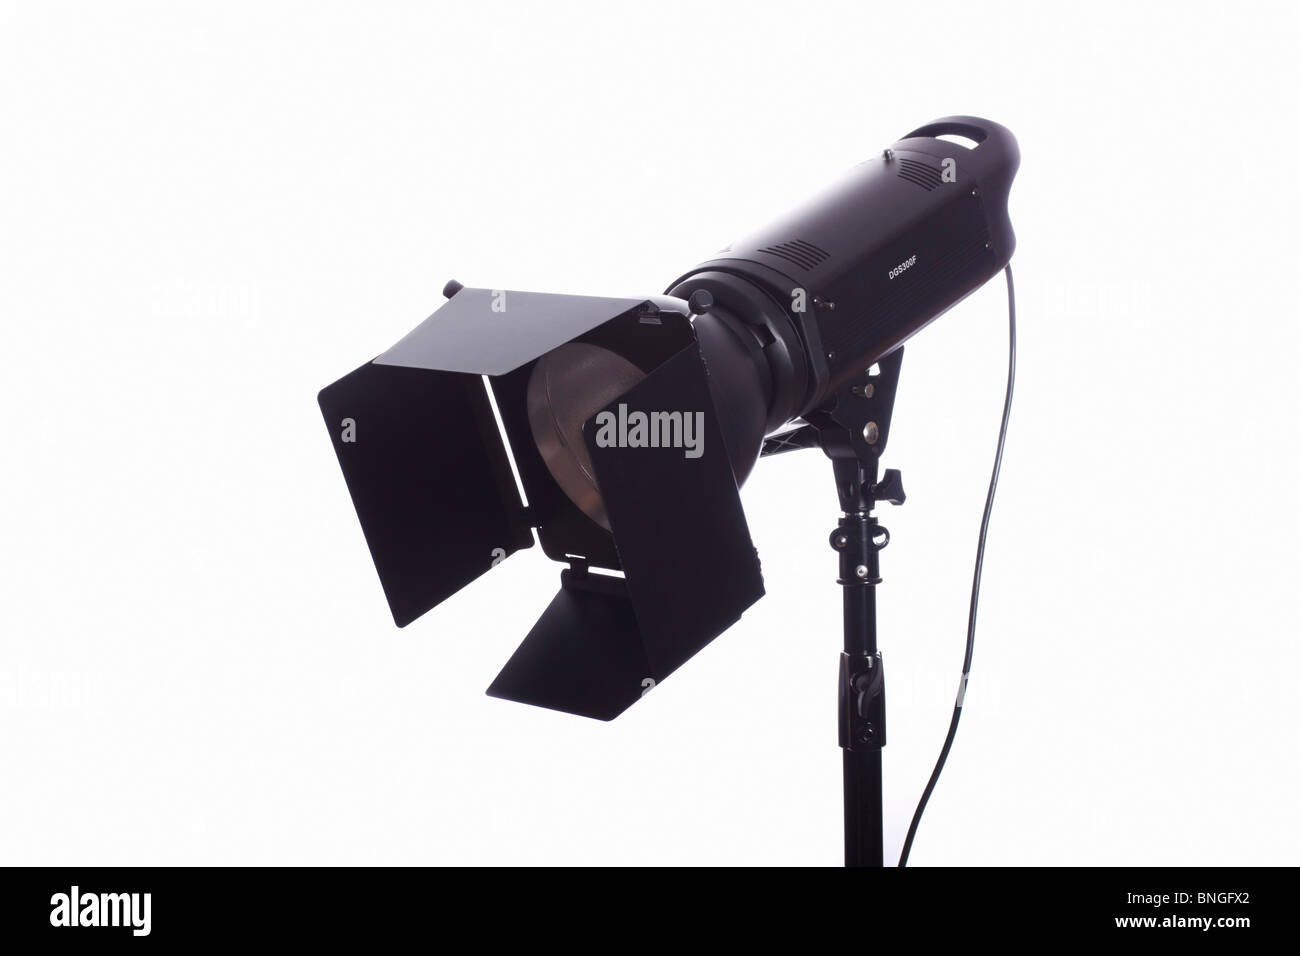 monolight on stand with barn doors used for photographic studio